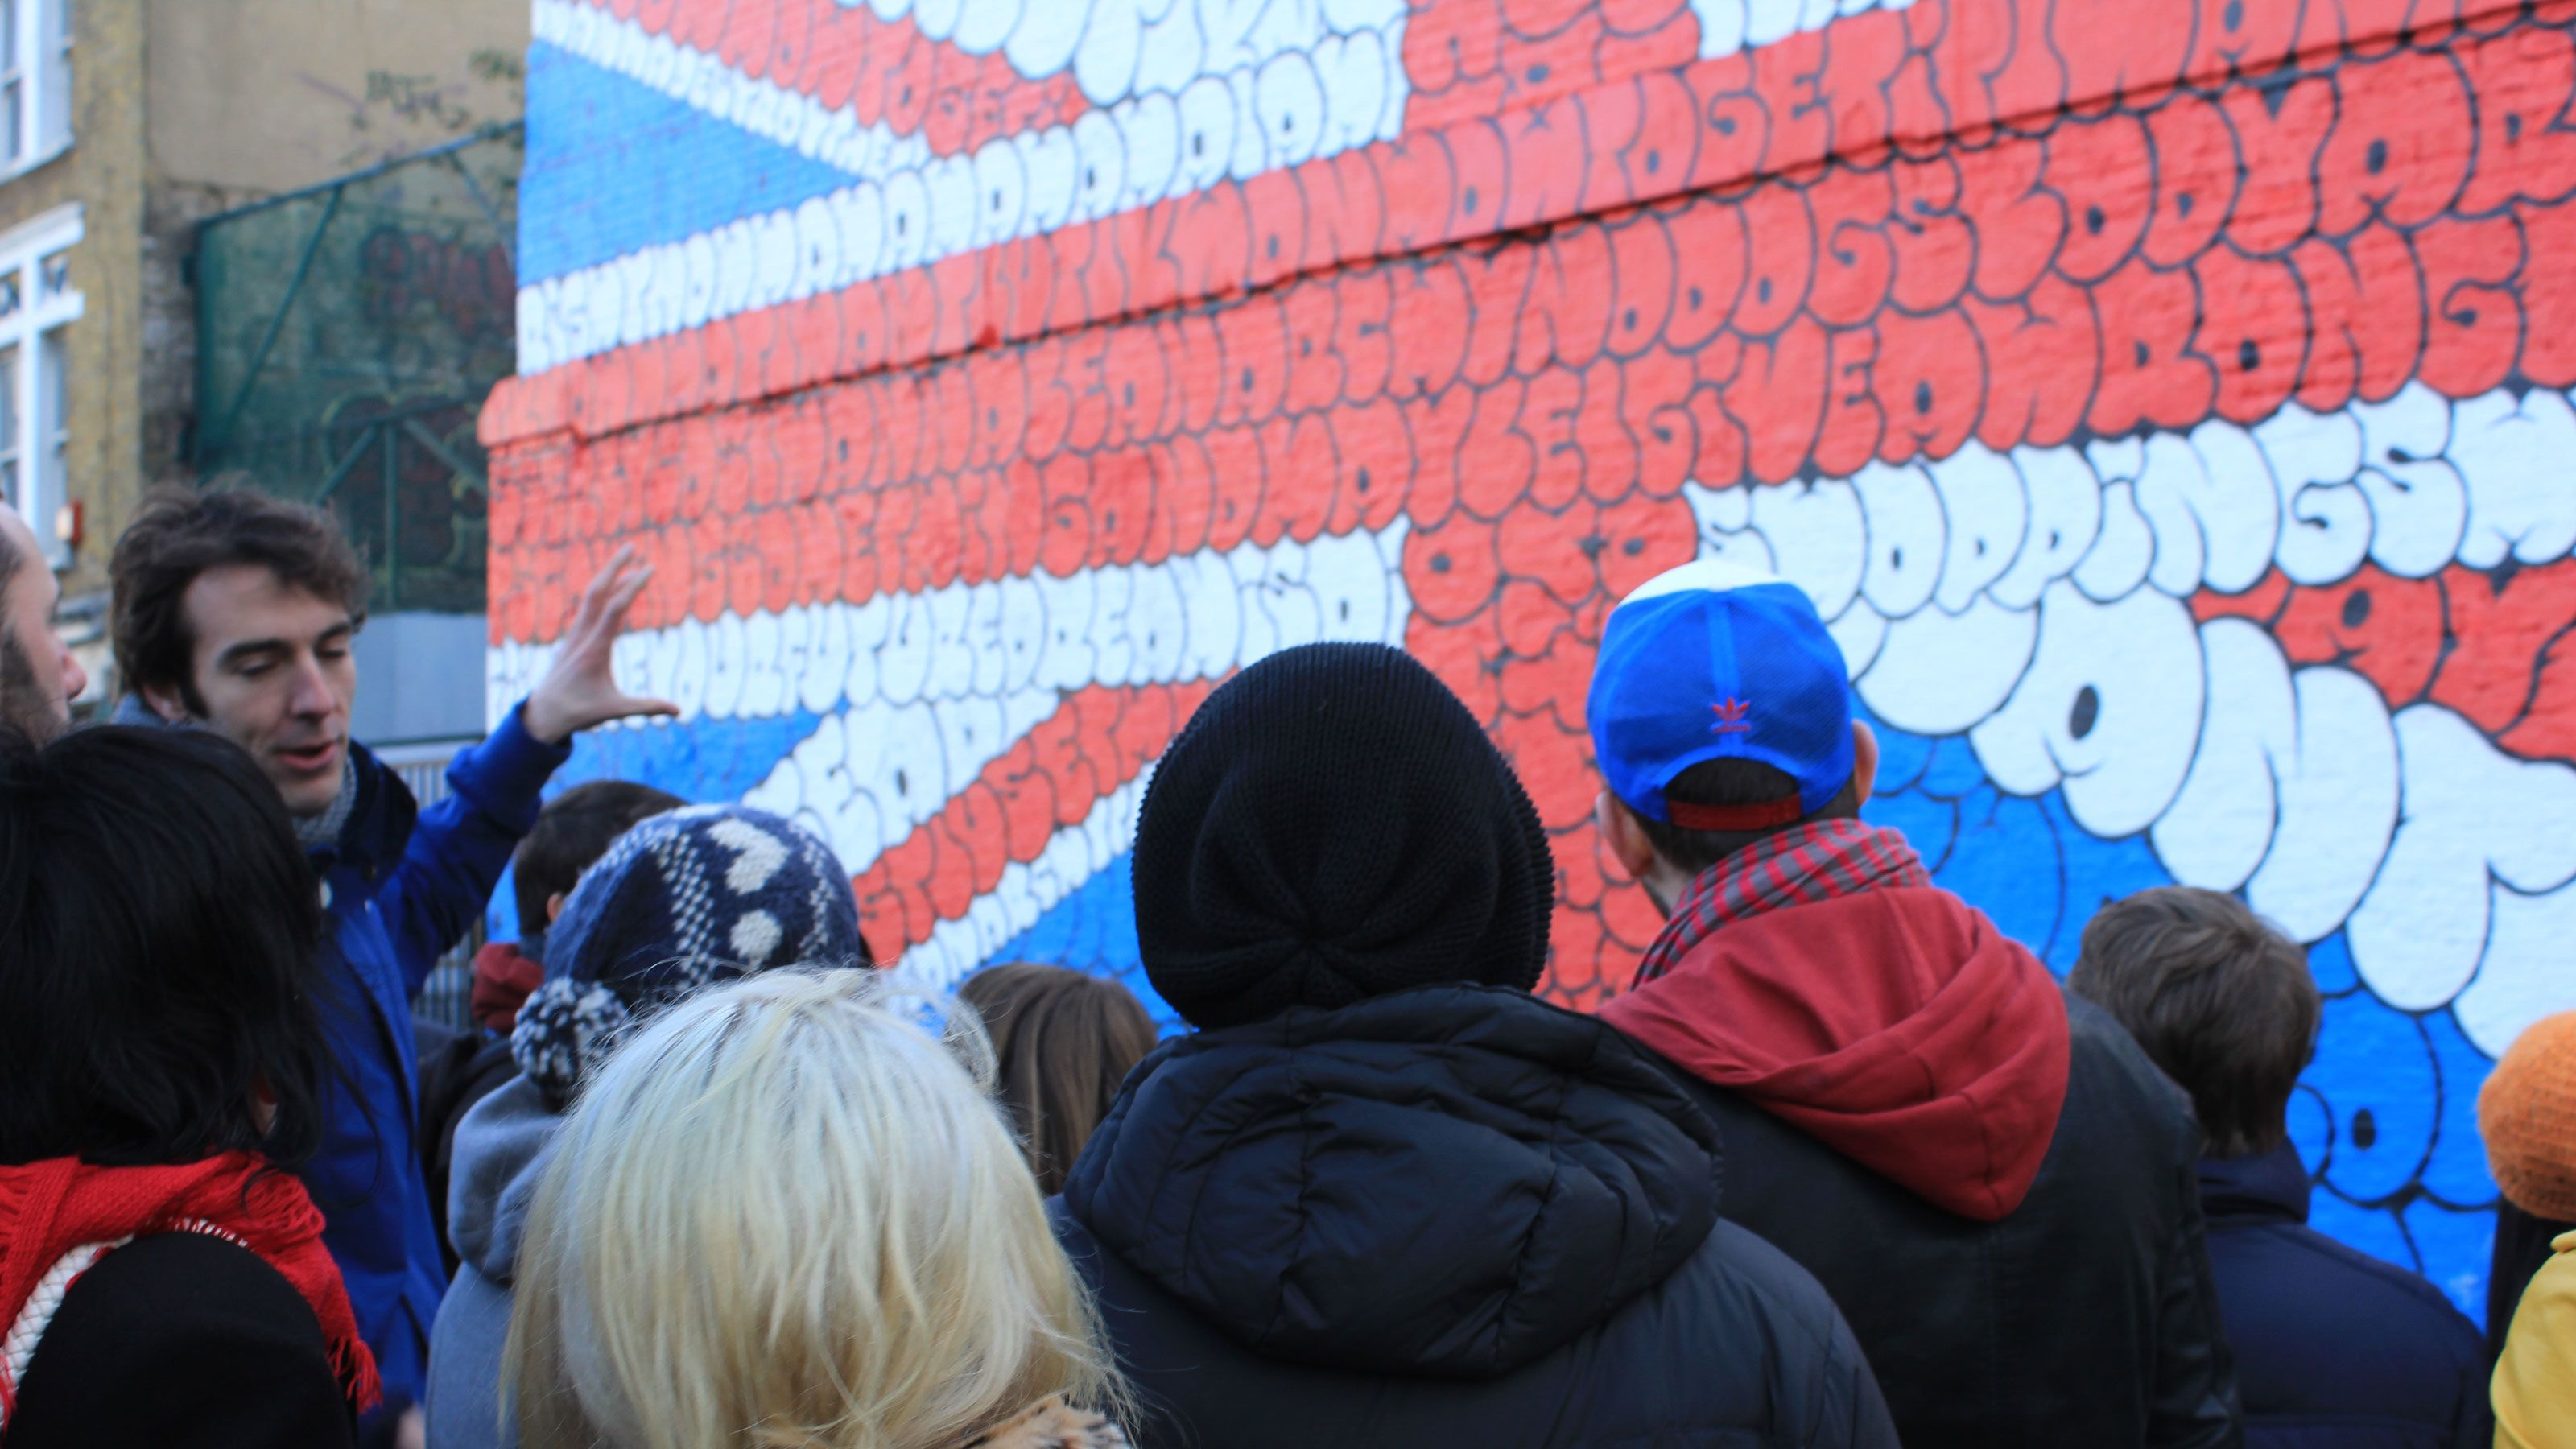 people looking at street art paint on building in London